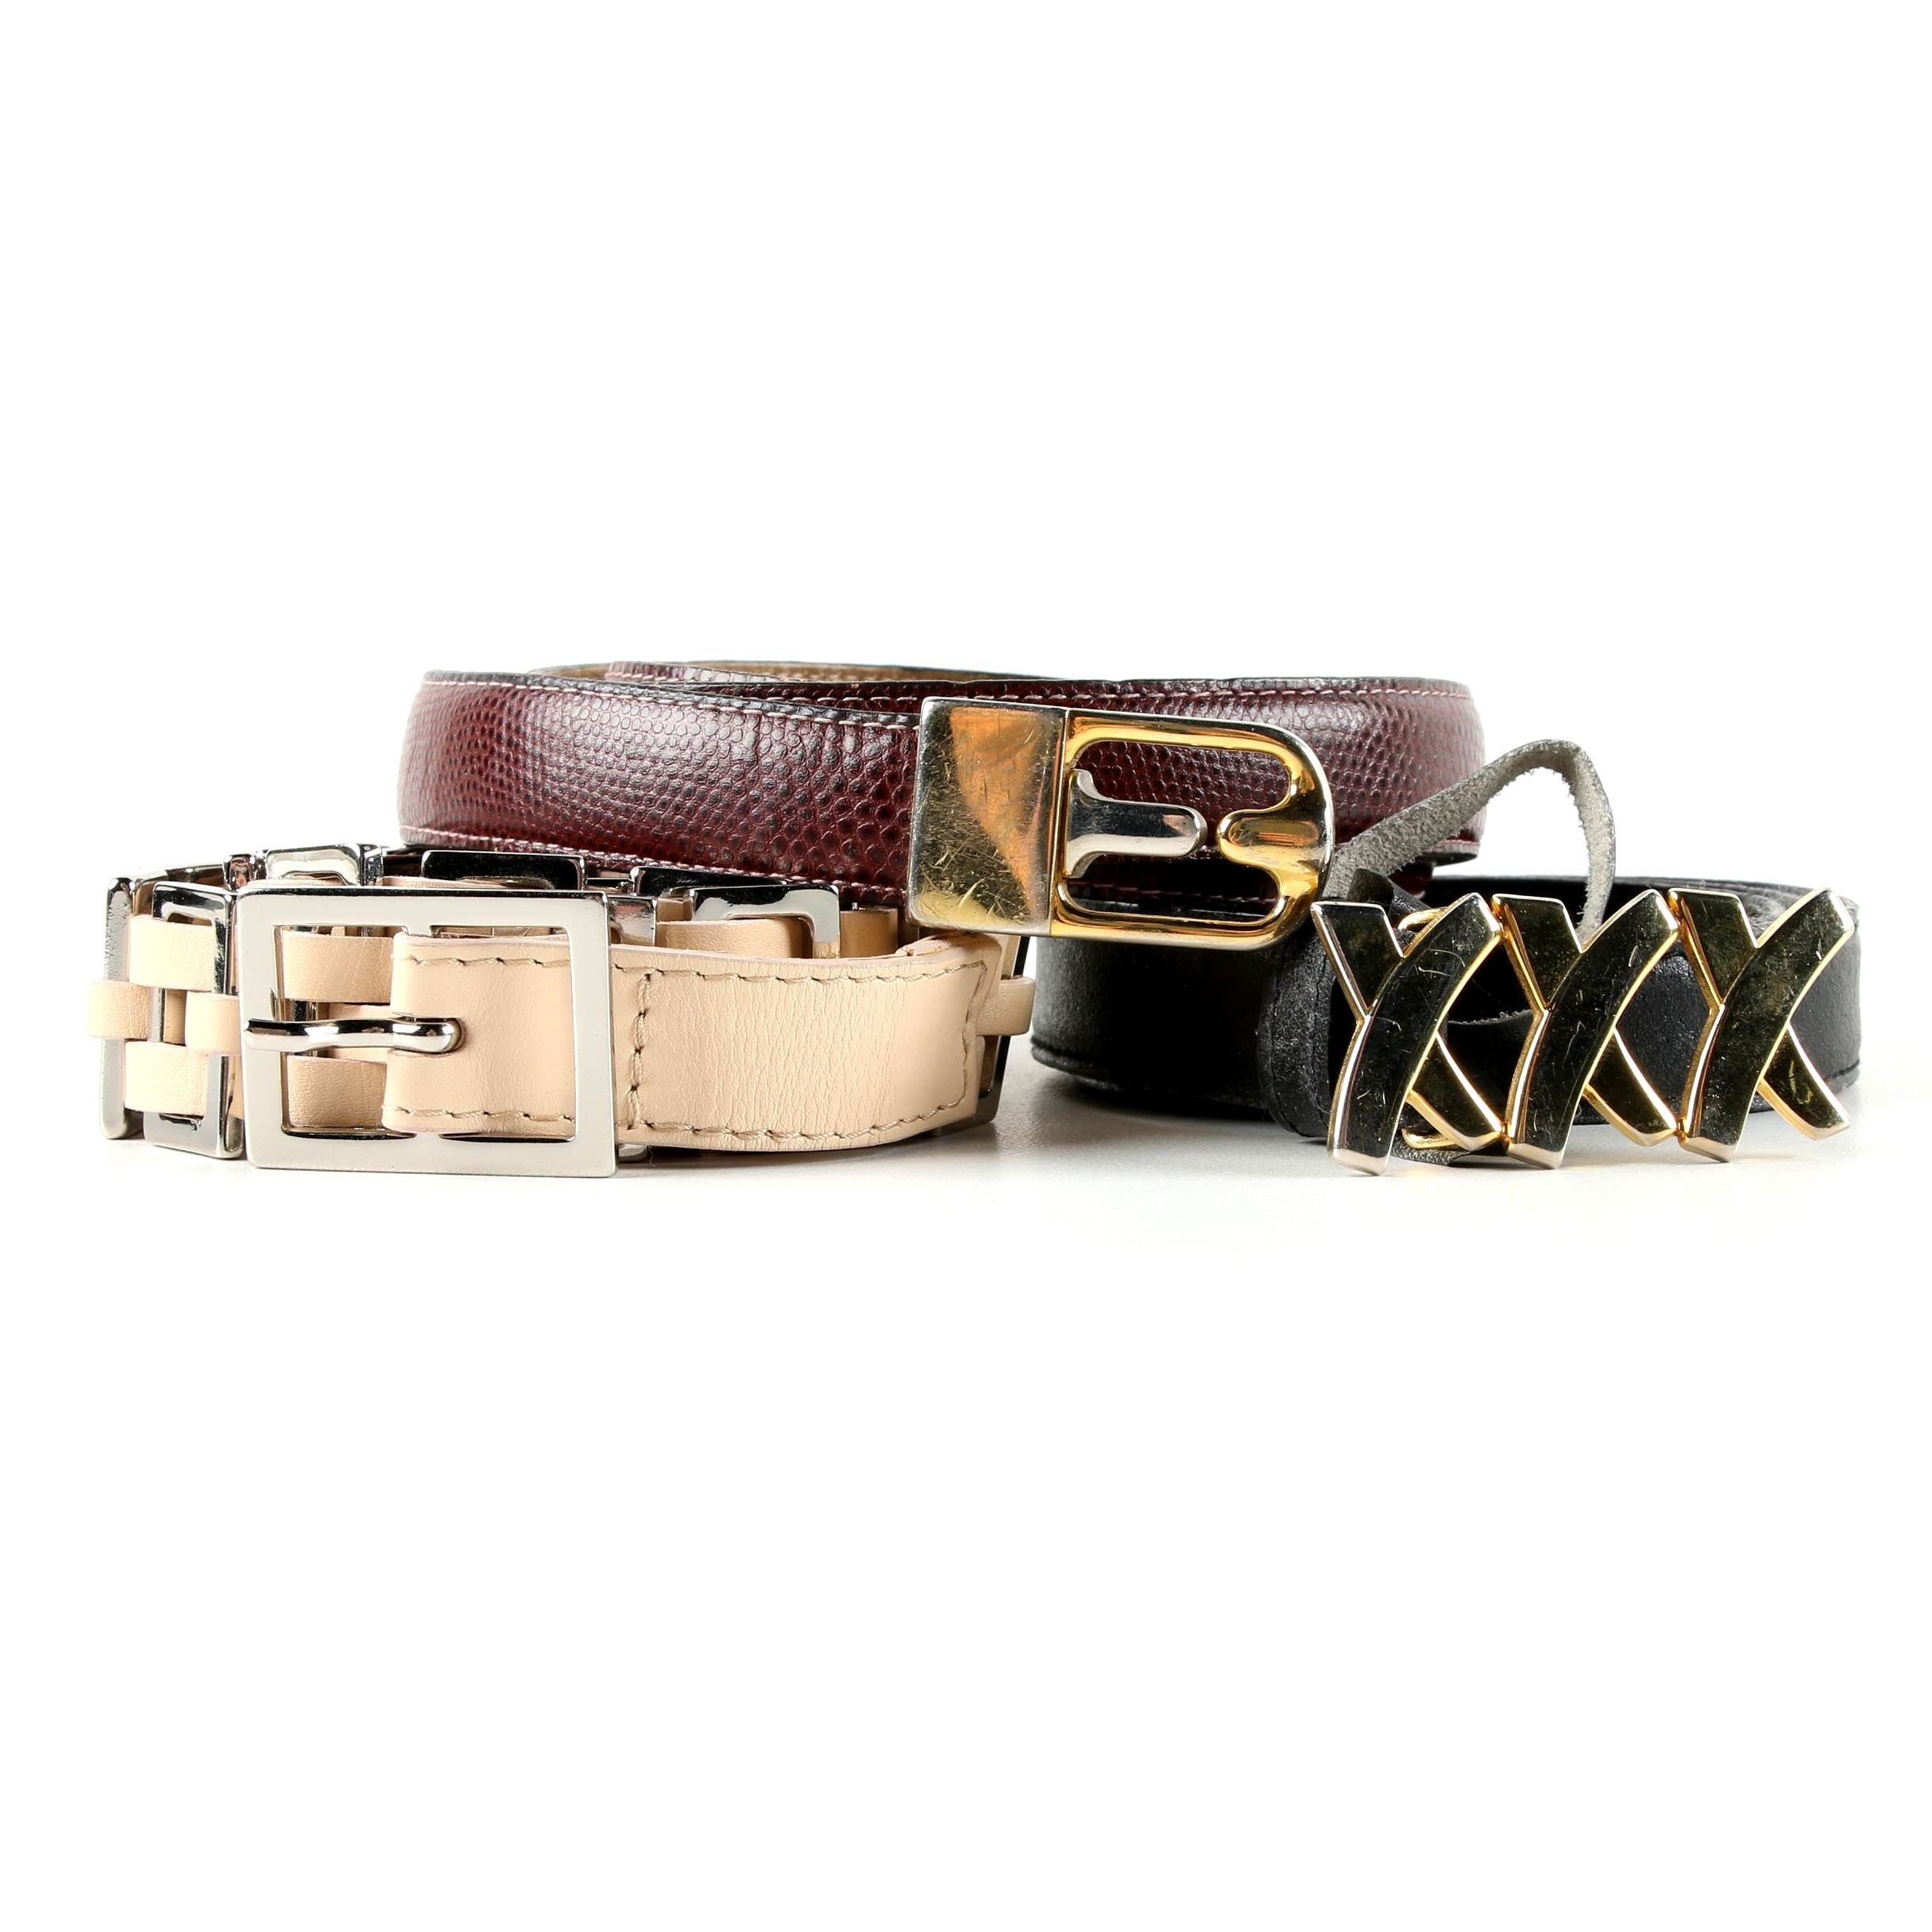 Women's Leather Belts Including Paloma Picasso and Alberta Ferretti